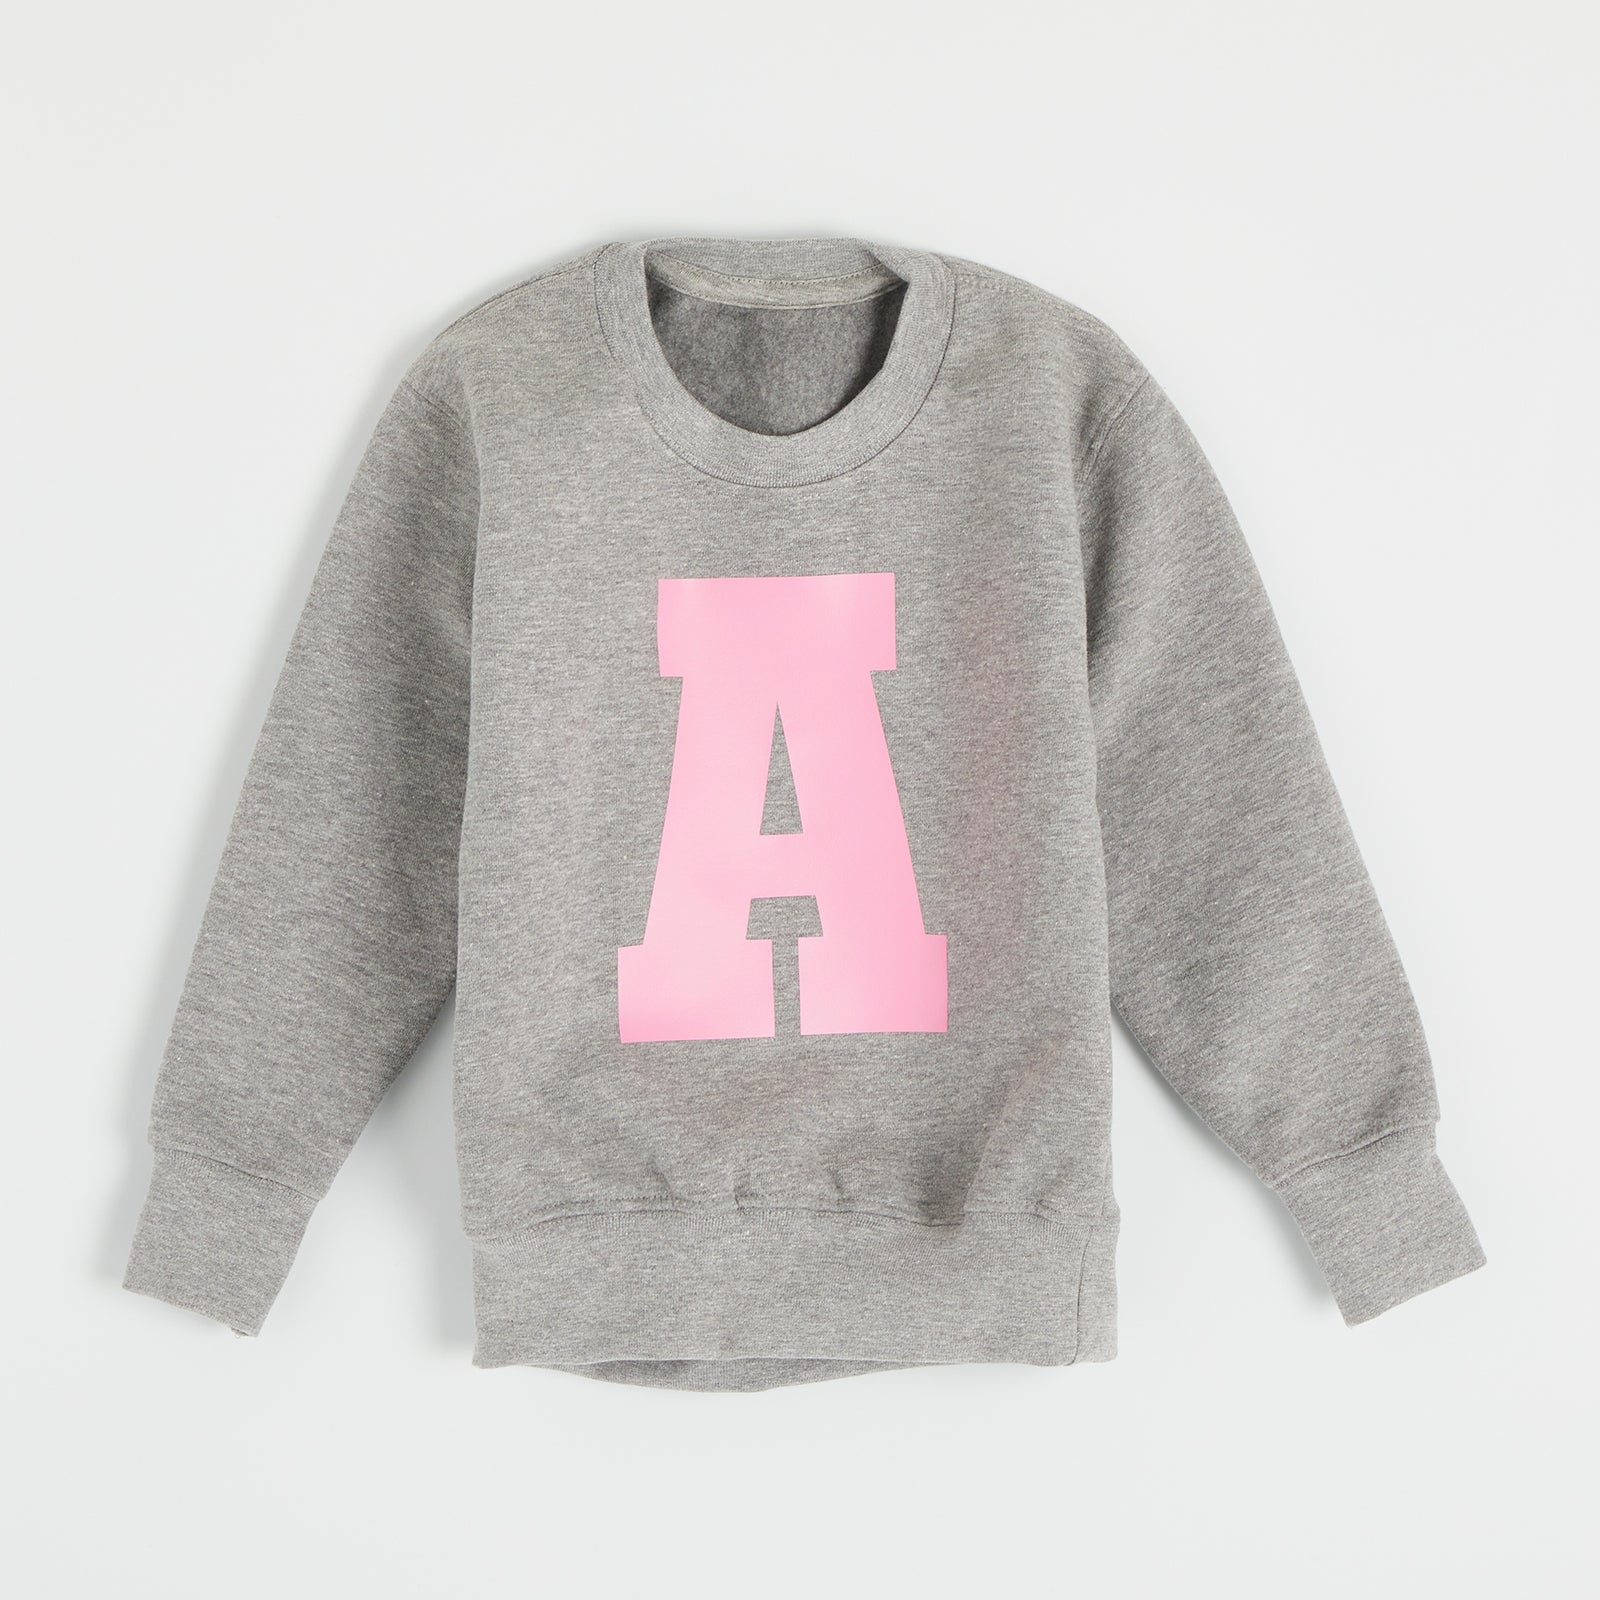 Personalised Grey Varsity Letter Sweater